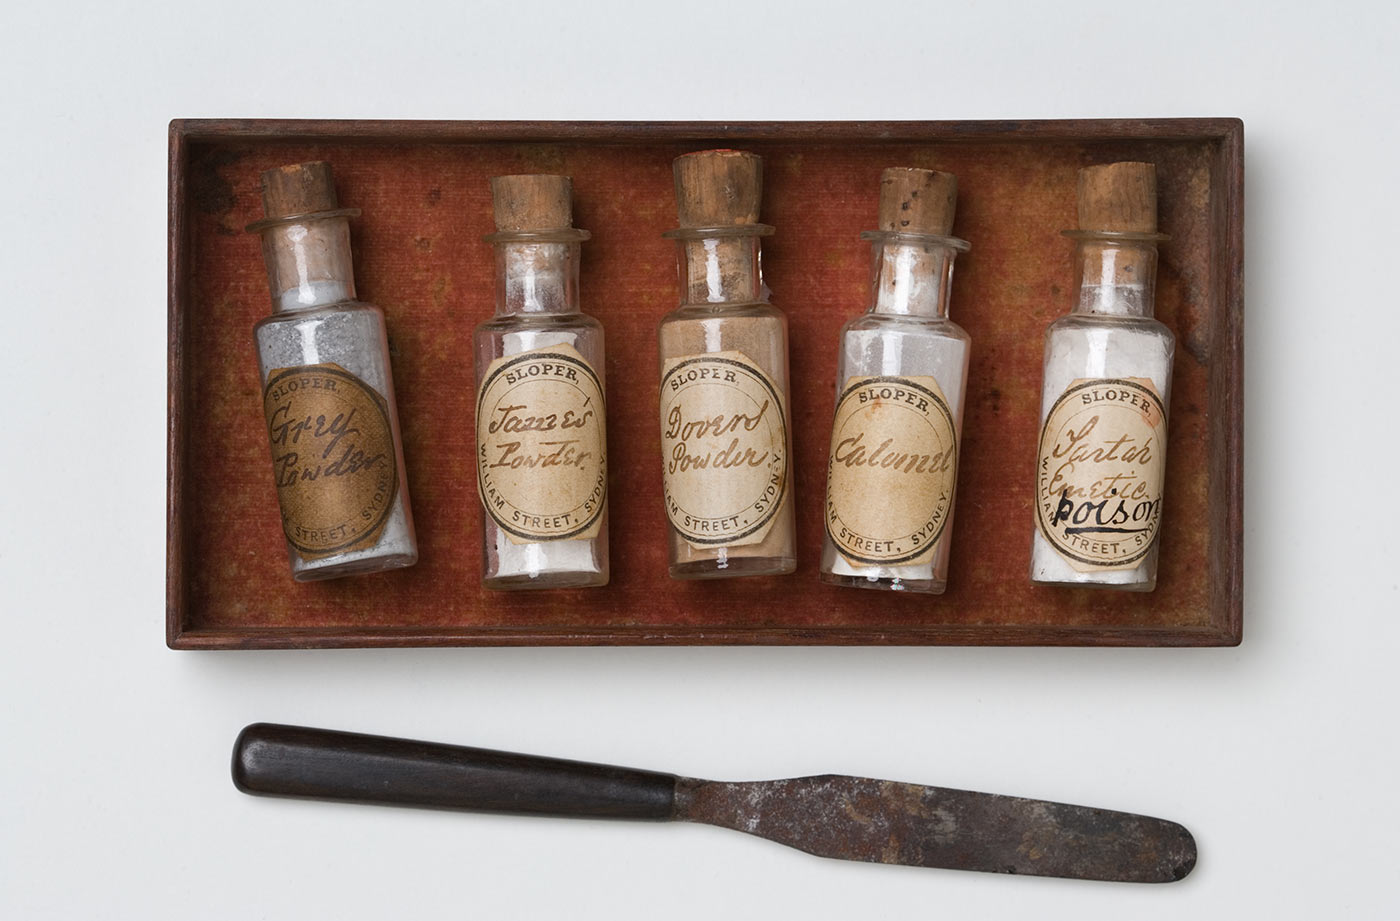 A set of bottles from the Faithfull family collection medicine chest. - click to view larger image